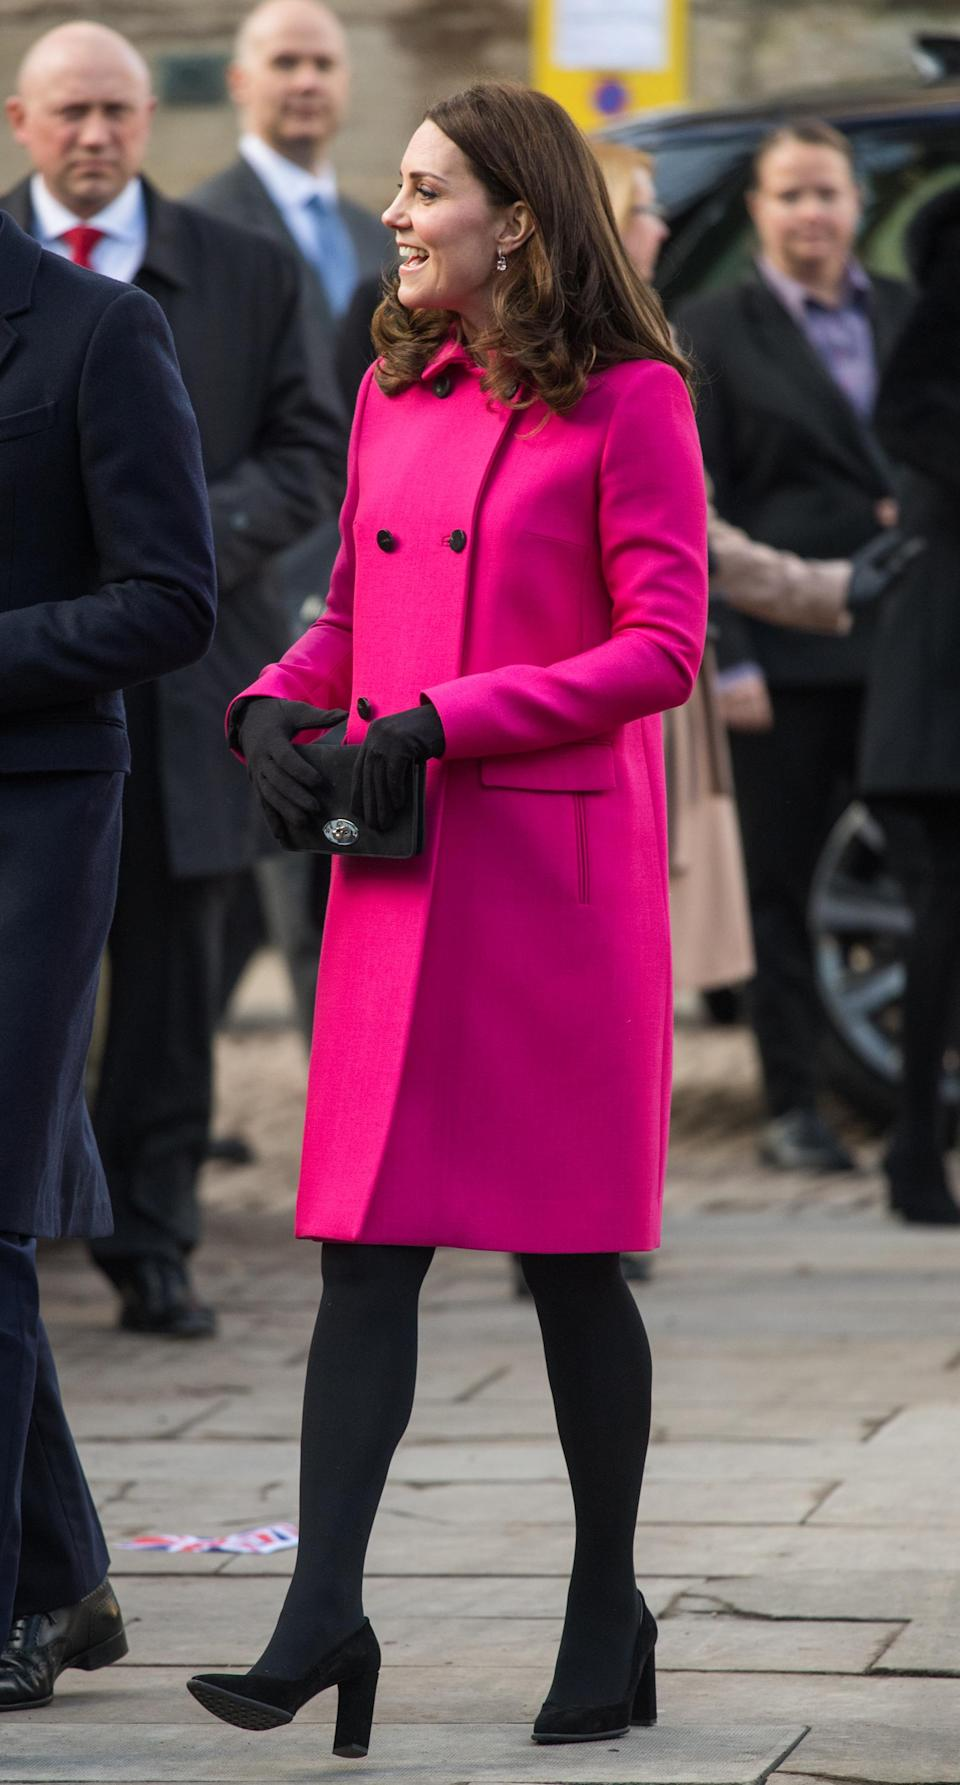 <p><strong>The occassion:</strong> A visit to Coventry Cathedral in Coventry. <br><strong>The look:</strong> A Mulberry double-breasted fucshia coat with the Mulberry Bayswater clutch, Tod's black suede pumps and Kiki McDonough drop earrings. <br>[Photo: Getty] </p>